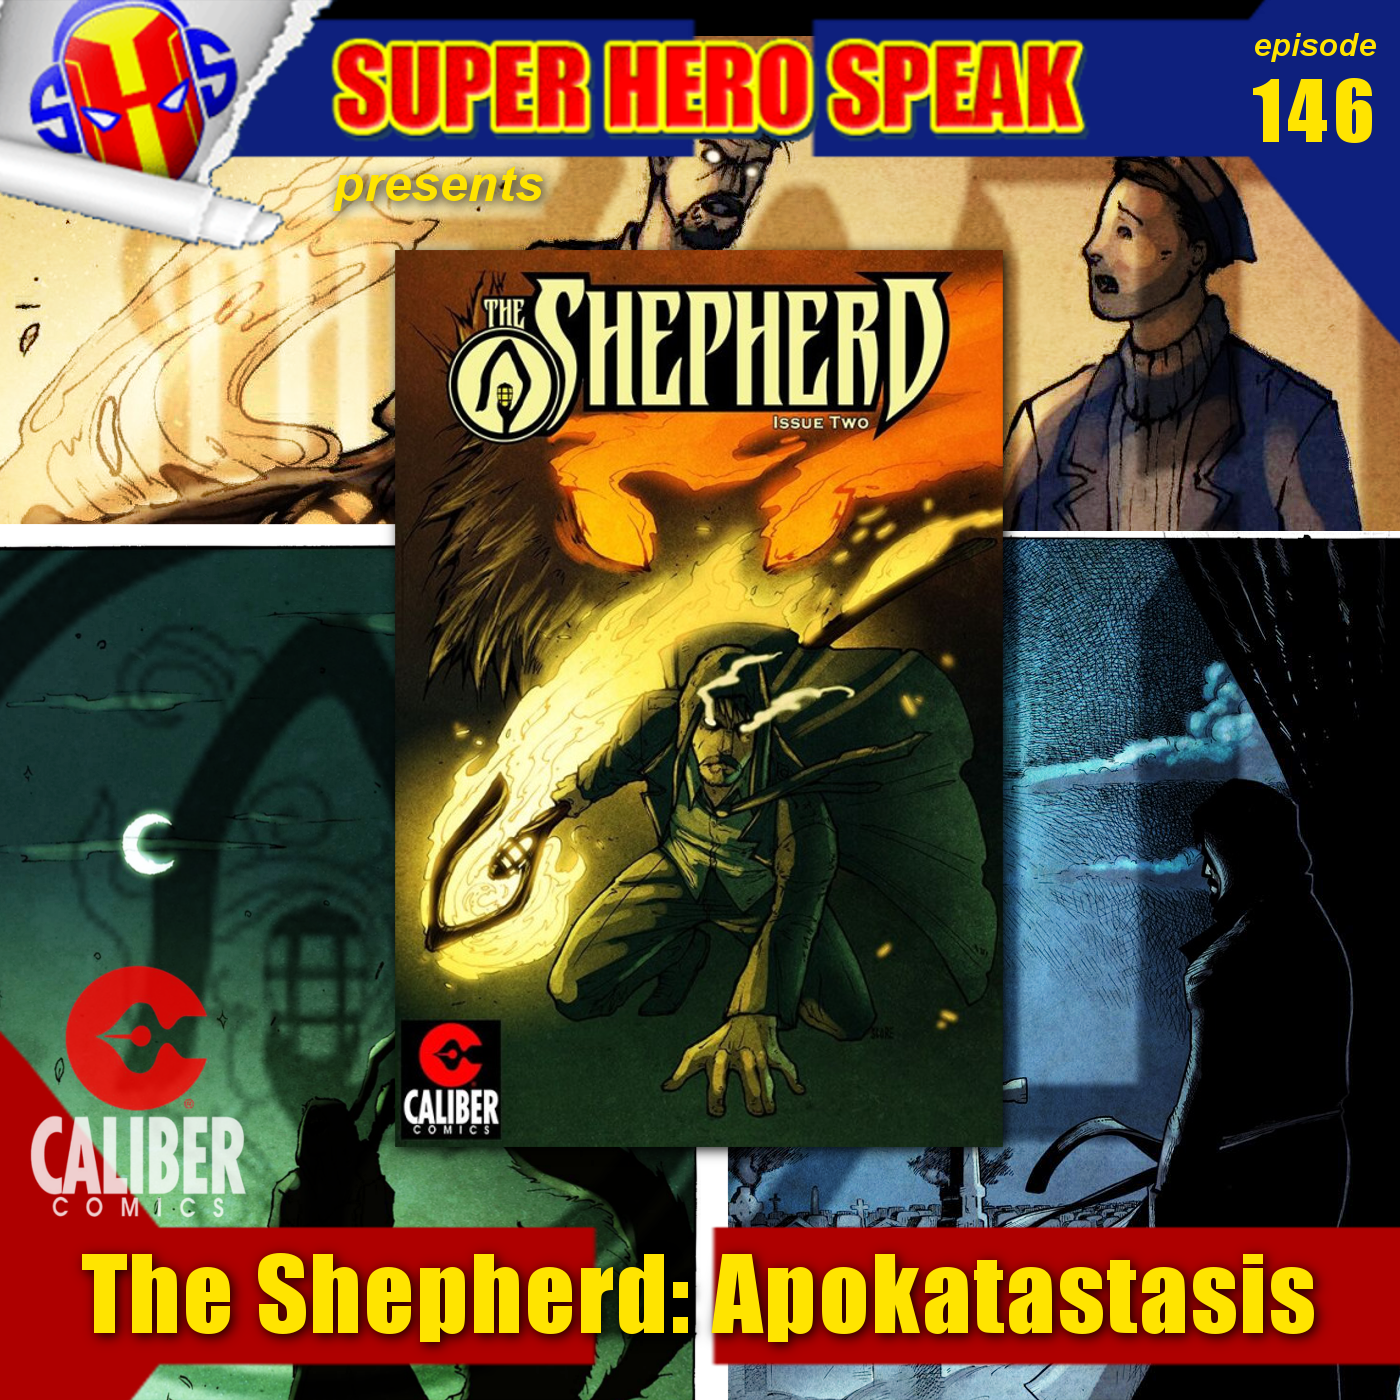 #146: The Shepherd: Apokatastasis‏